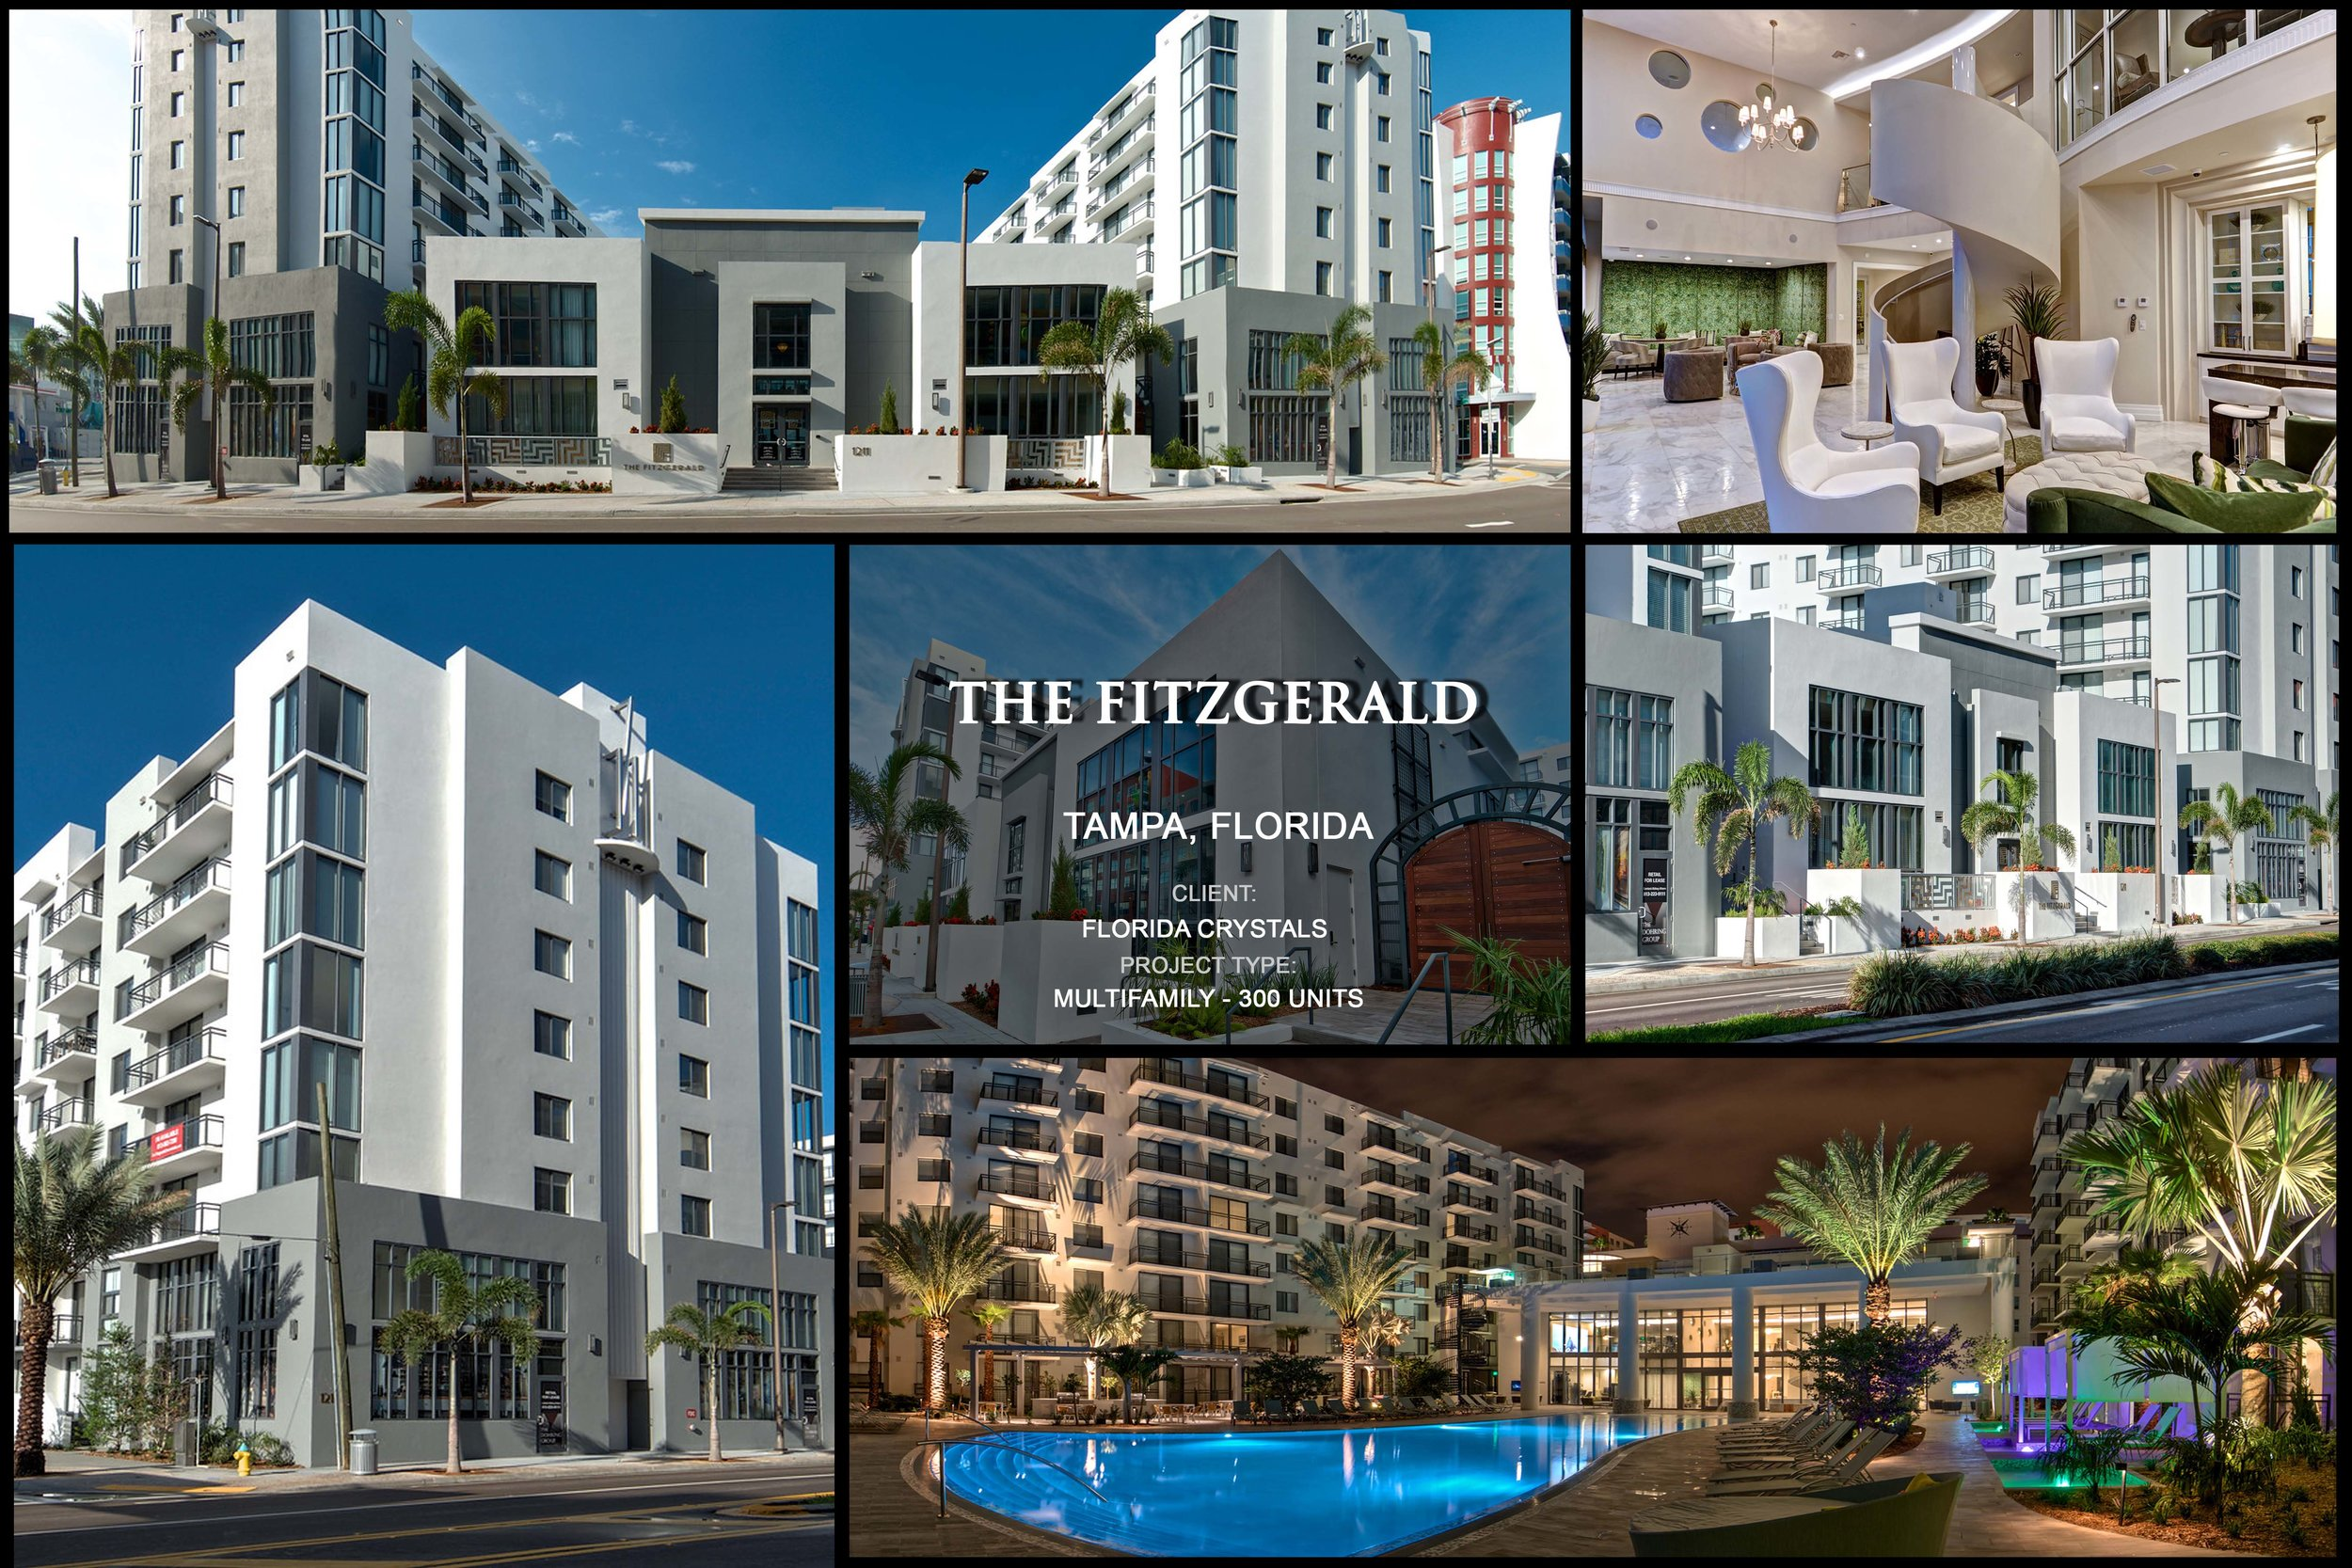 The Fitzgerald